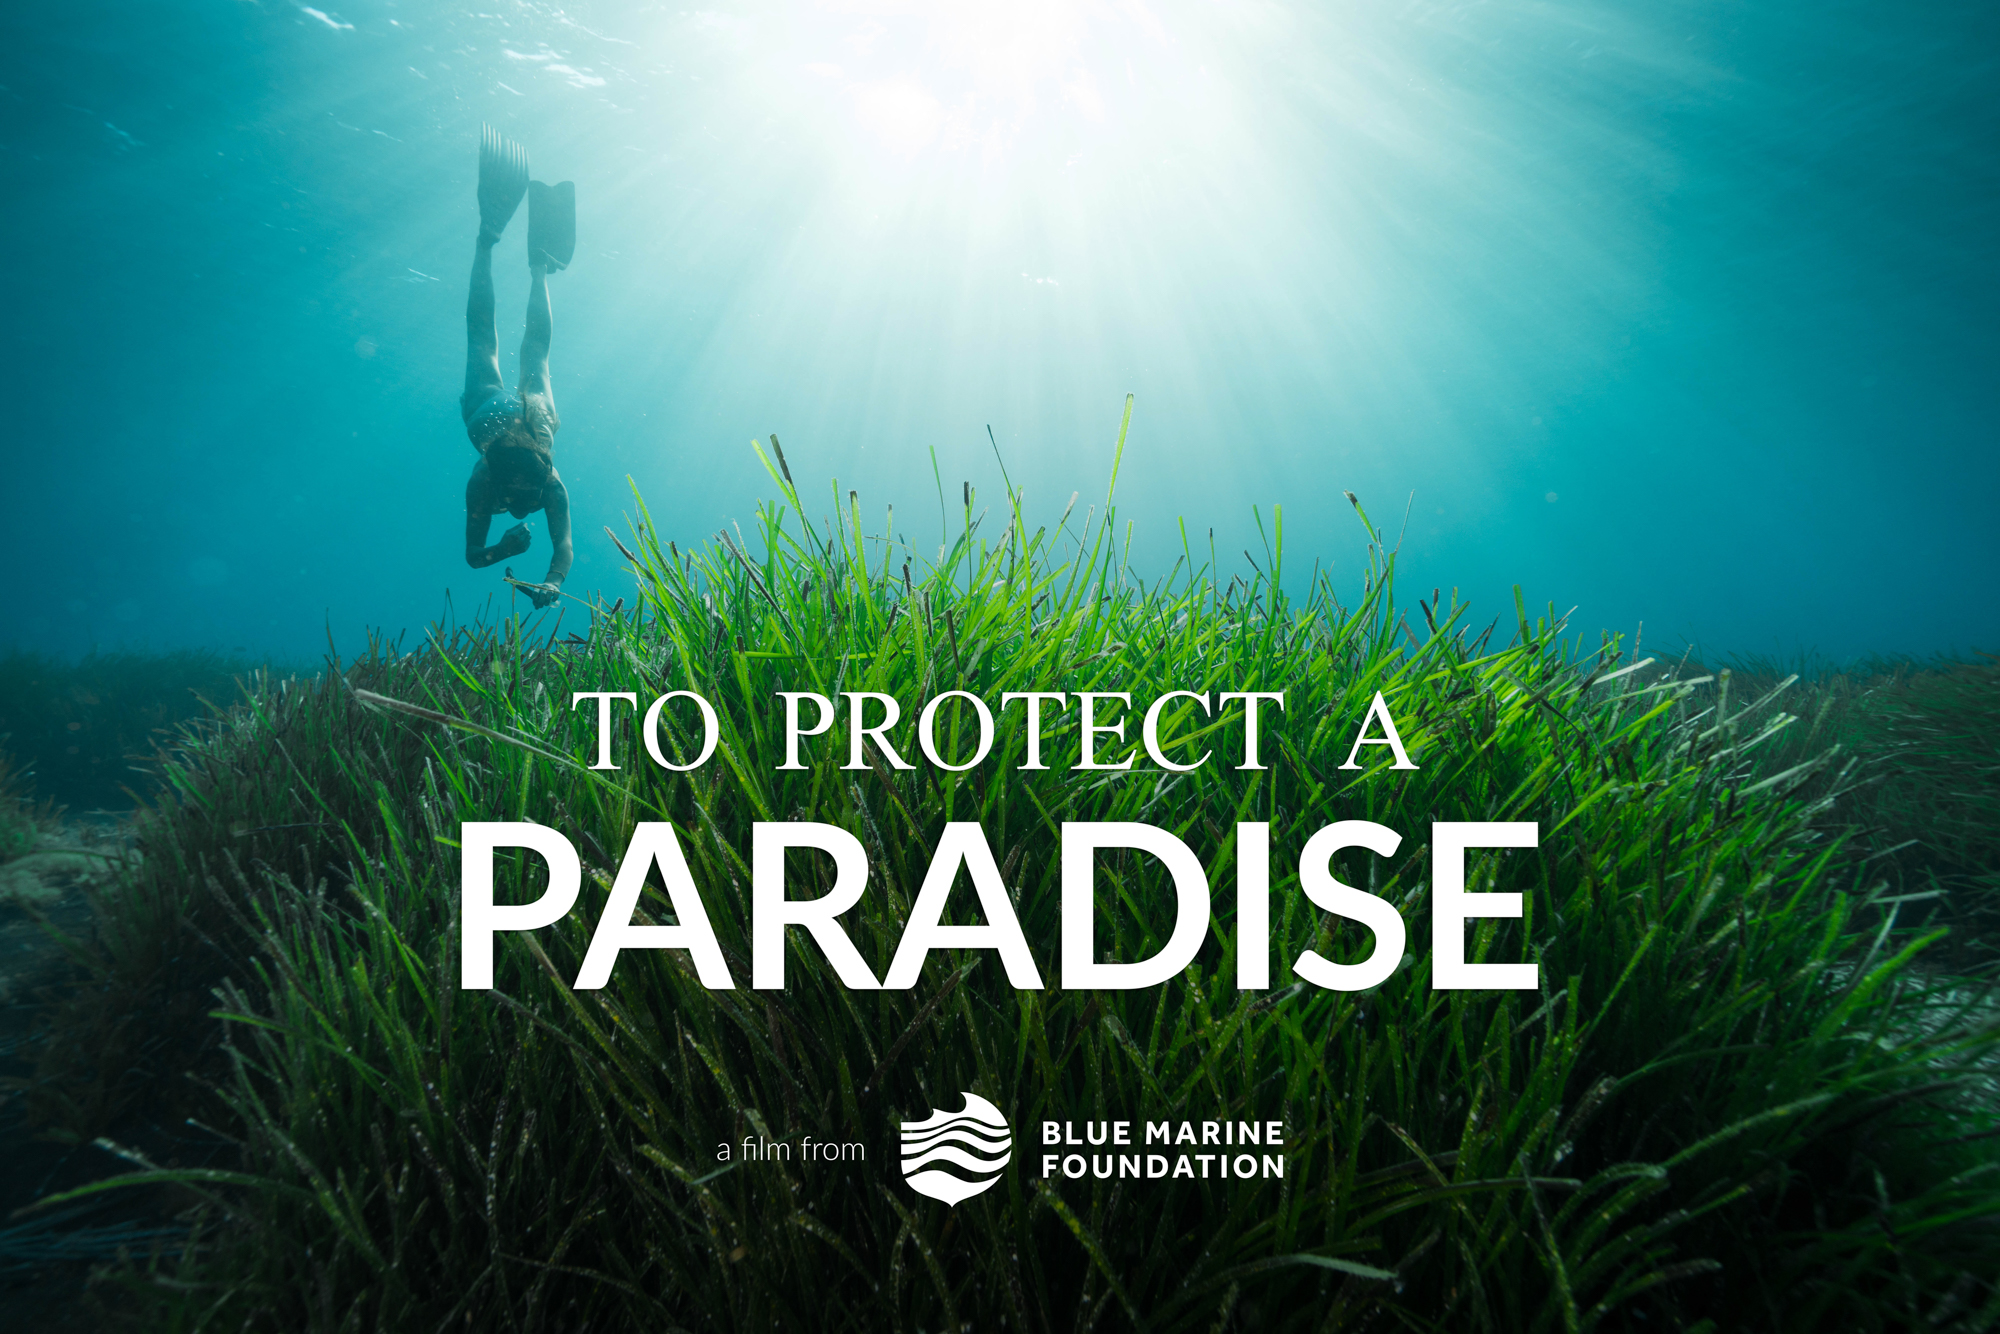 Movie Poster_To Protect A Paradise_Landscape.jpg